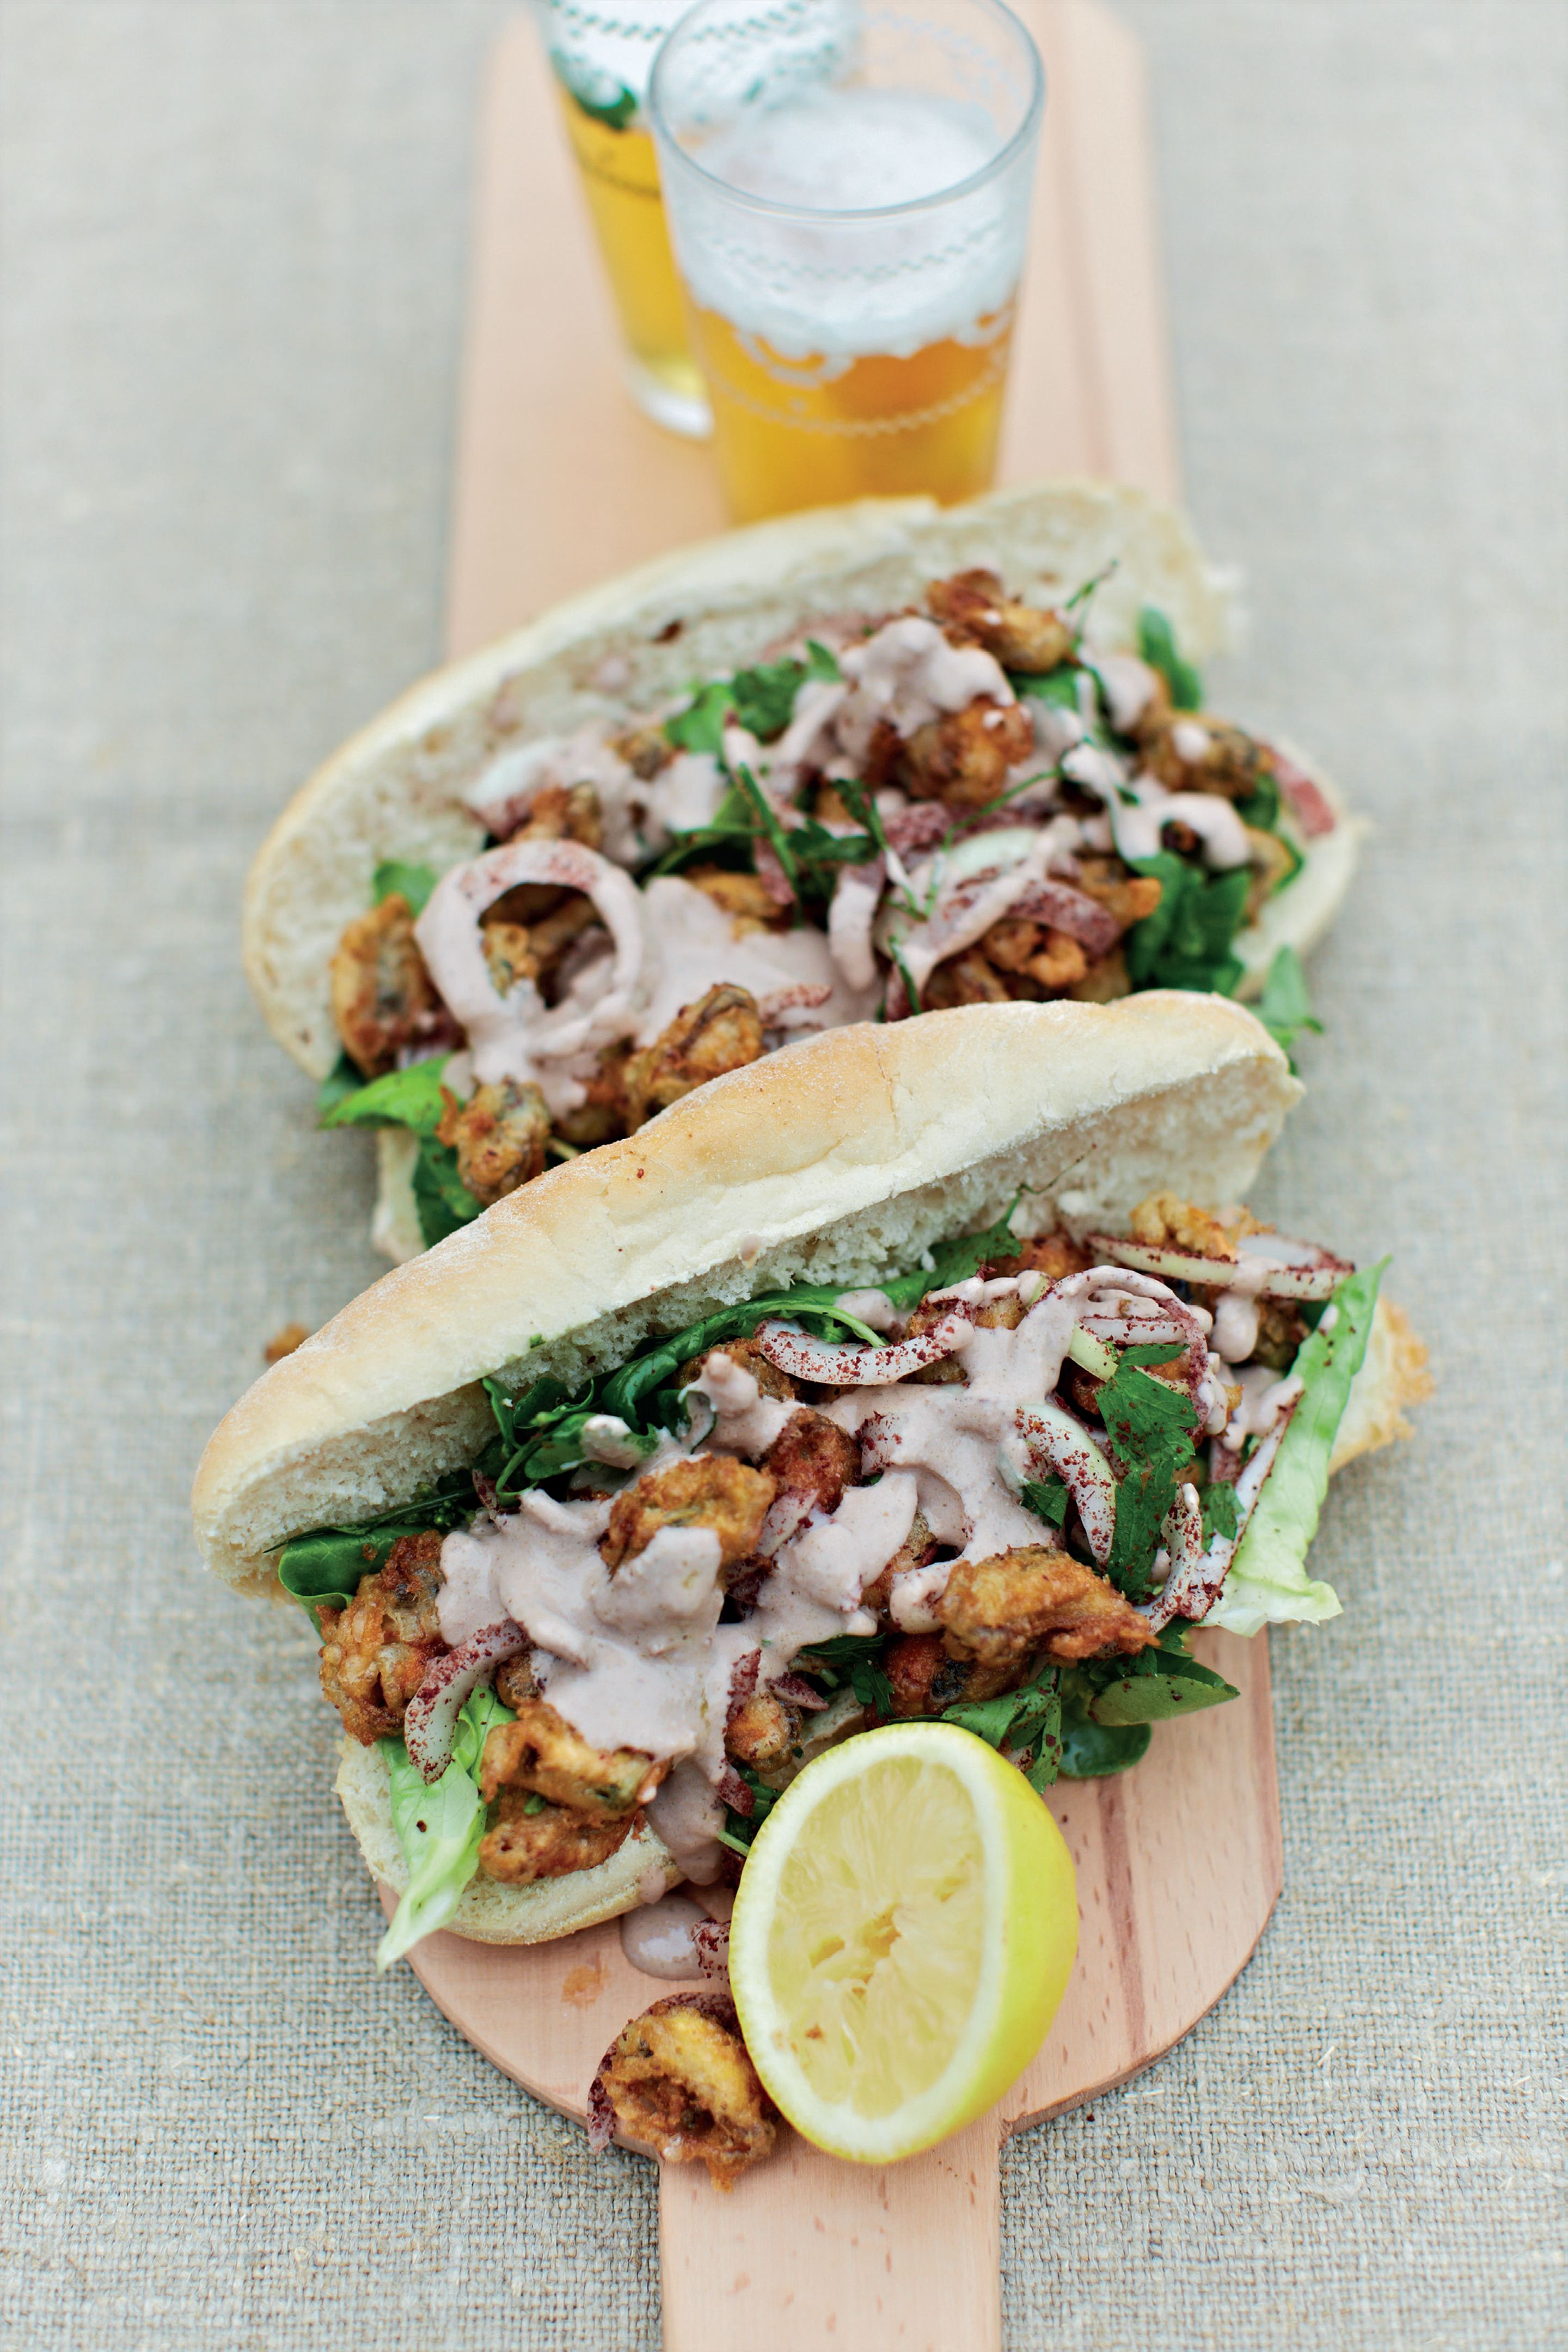 Fried mussel rolls, or Turkish po-boys